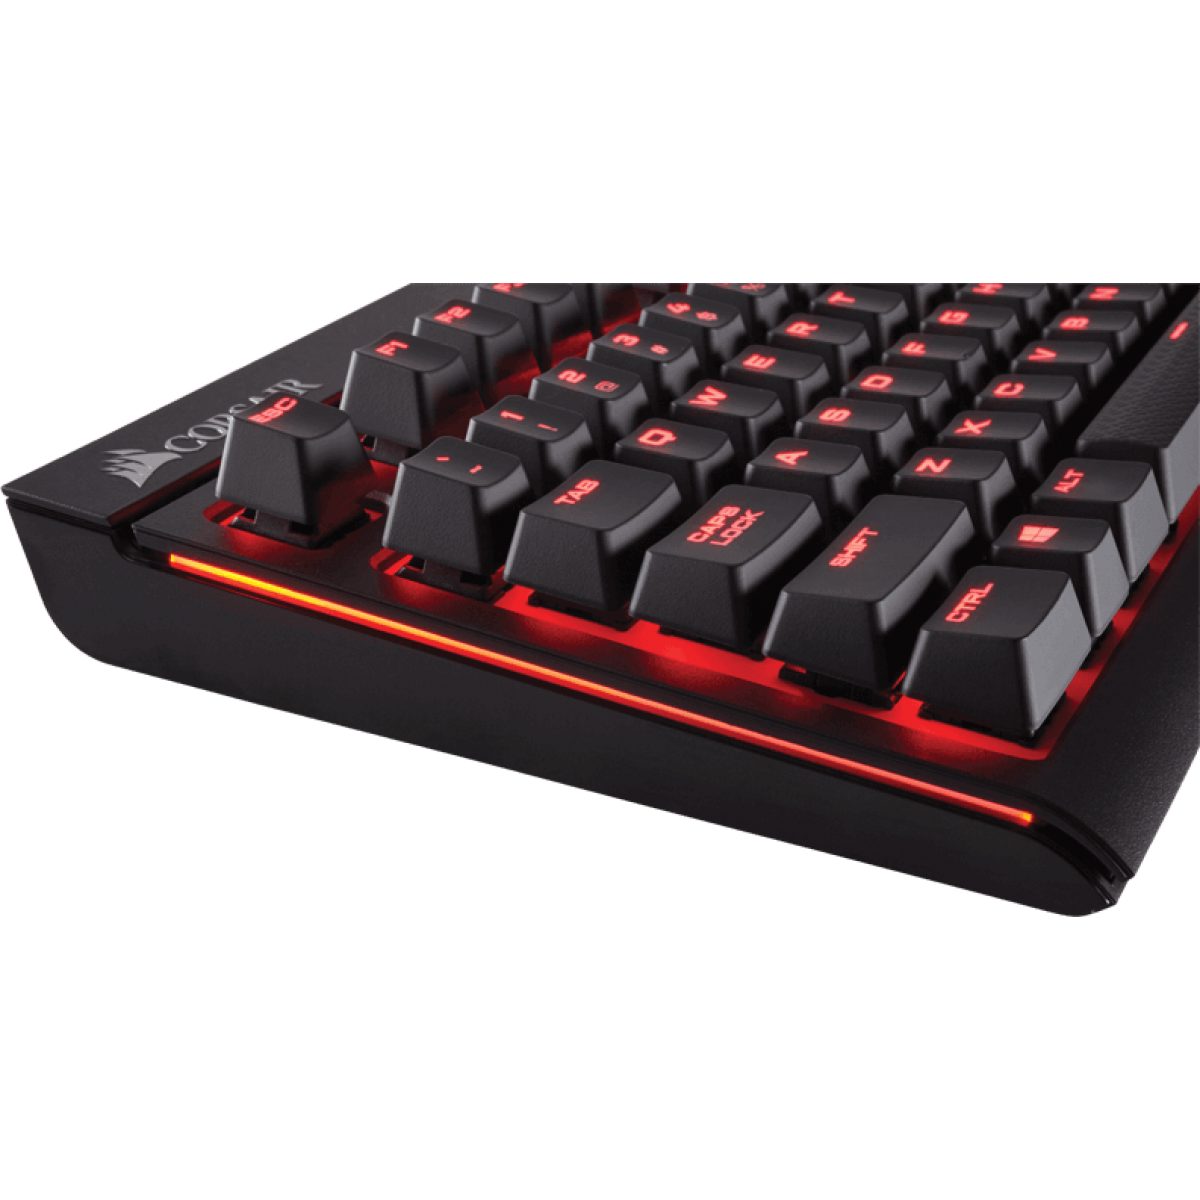 Teclado Mecânico Corsair Gamer Strafe, Switch Cherry MX Brown, CH-9000092-NA